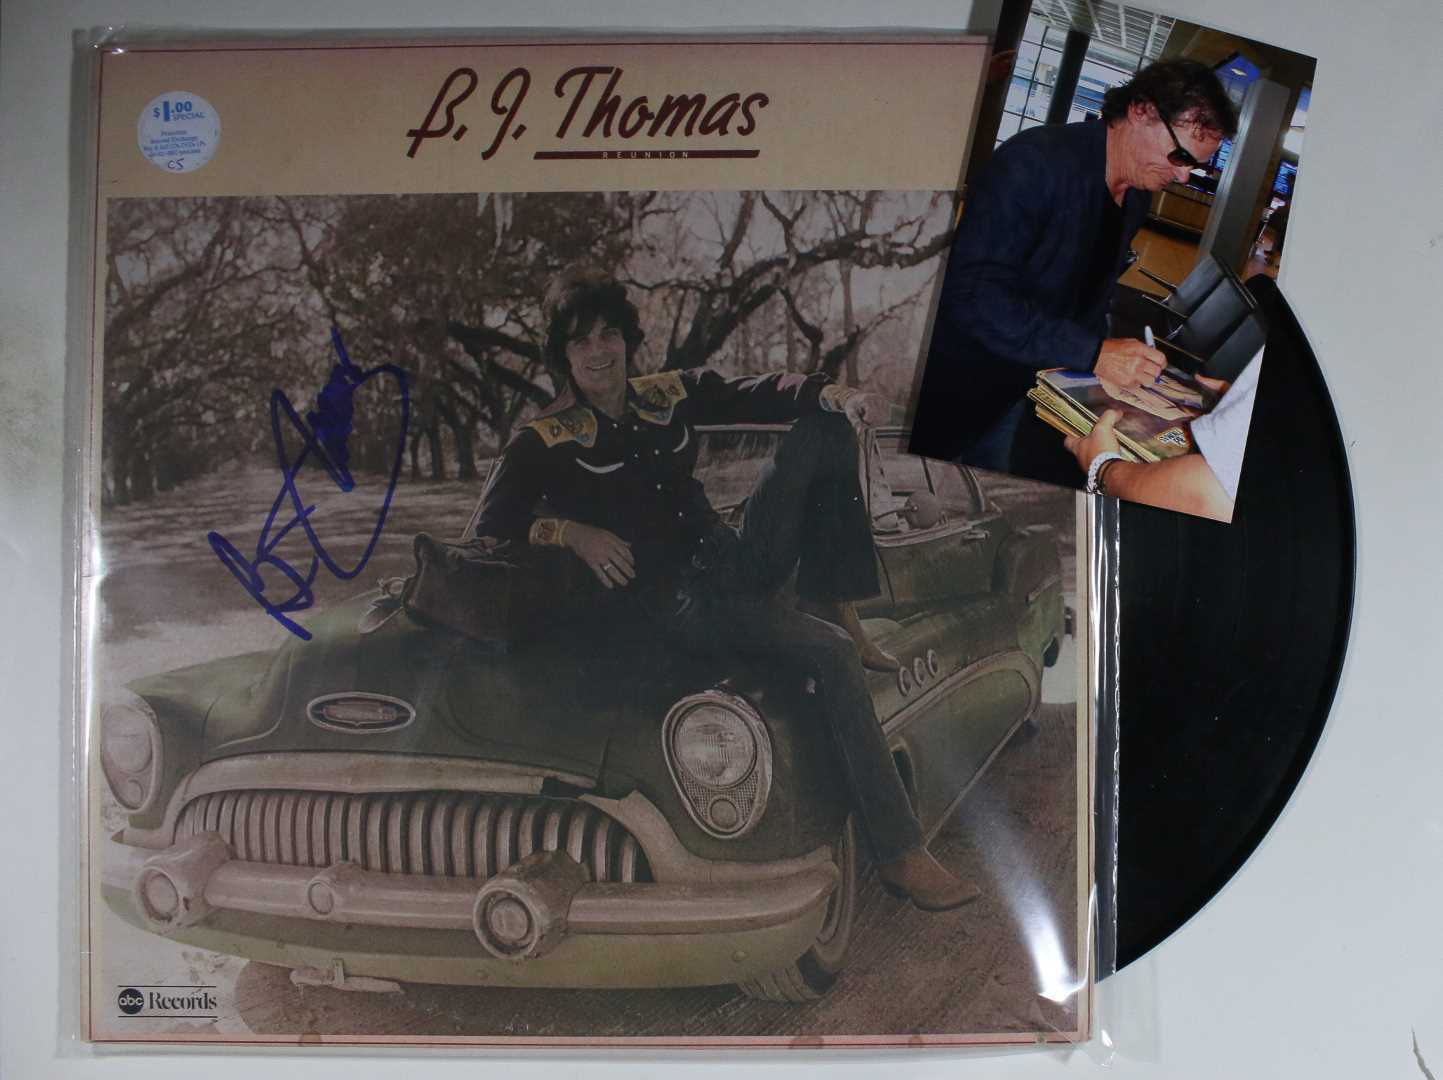 Primary image for B.J. Thomas Signed Autographed Record Album w/ Proof Photo